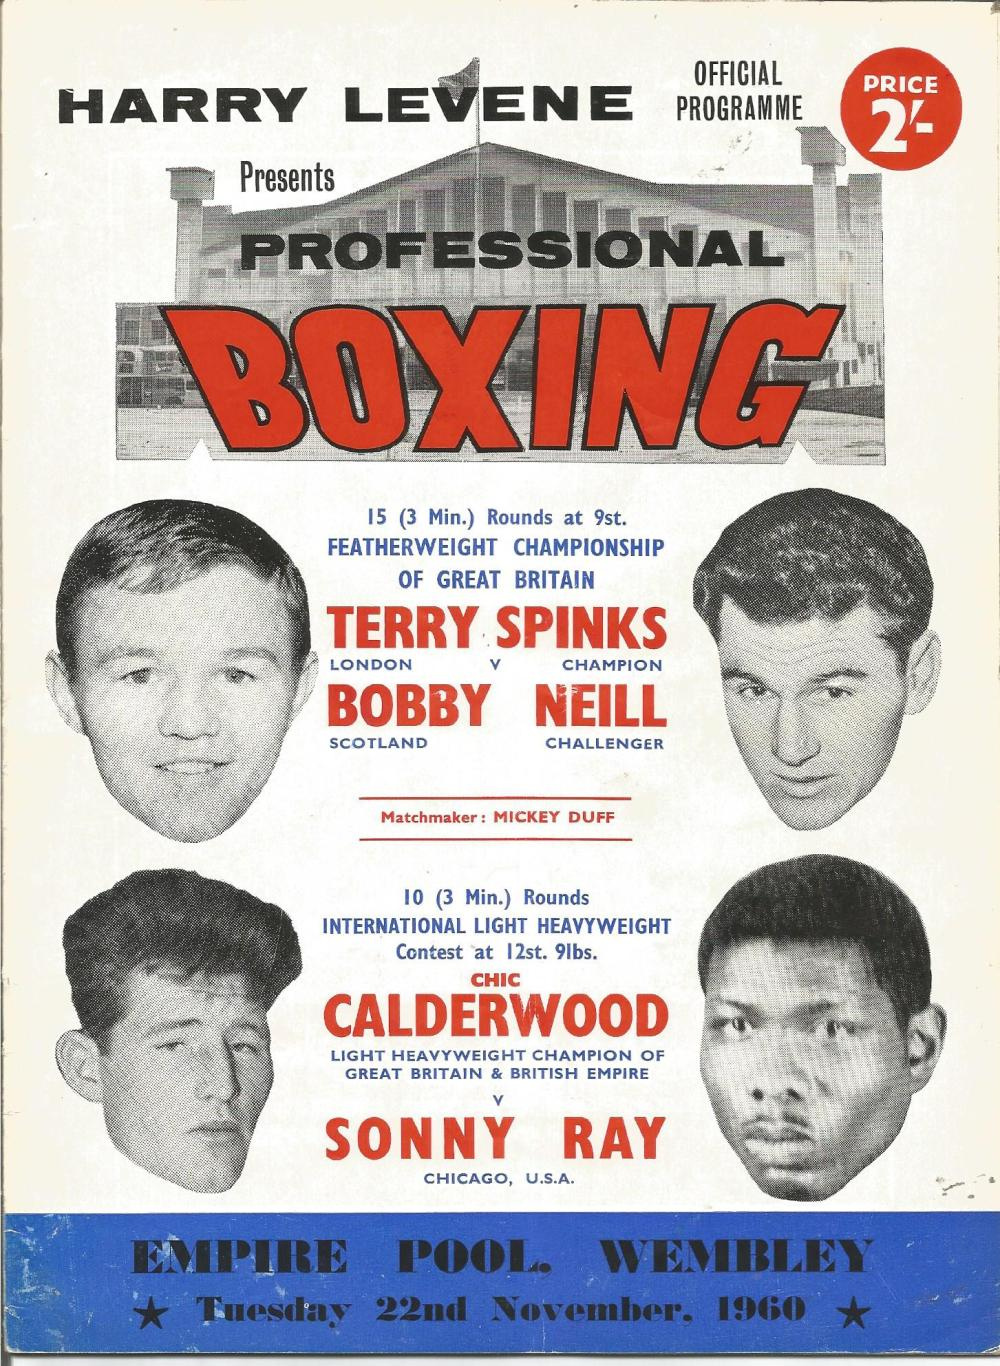 Boxing Terry Spinks v Bobby Neill Featherweight championship of Great Britain vintage fight